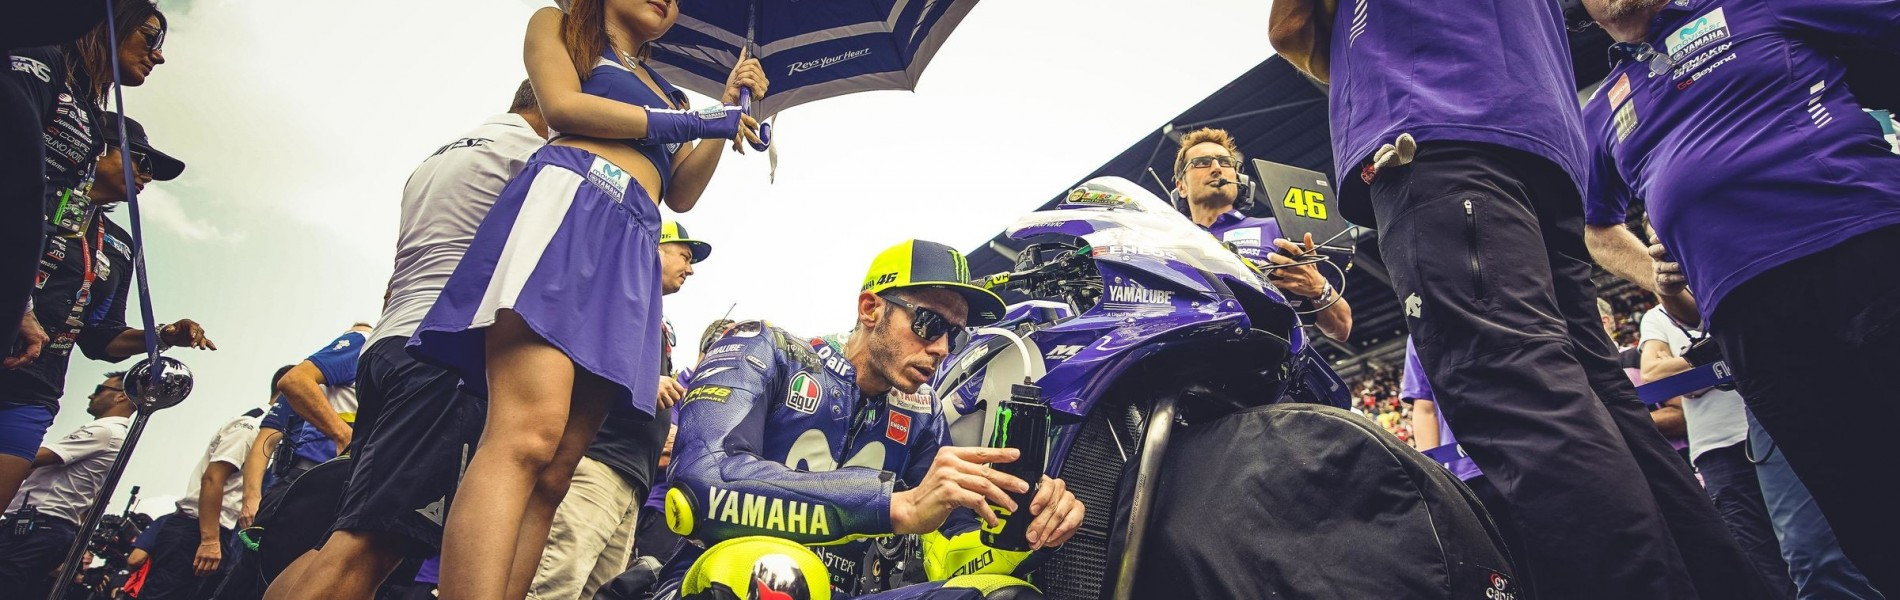 Valentino Rossi at the 2018 GP of Thailand